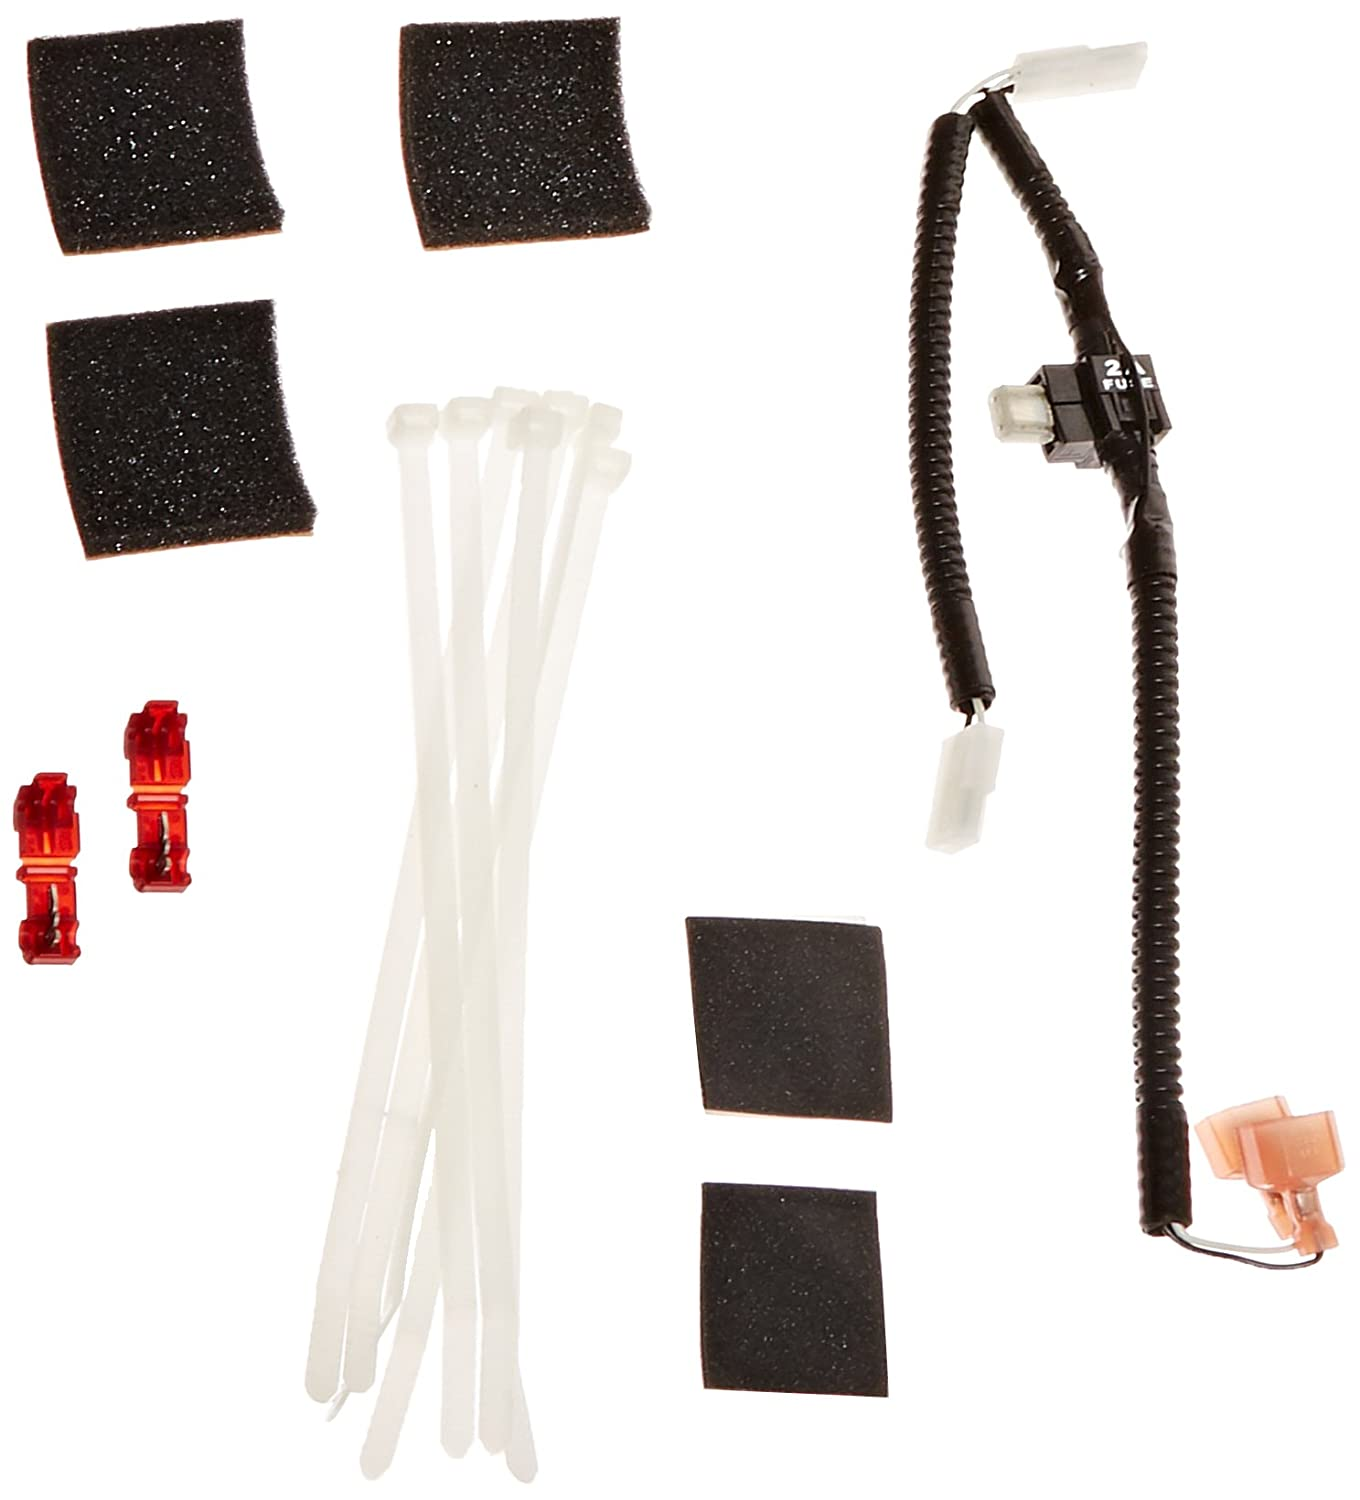 Genuine Scion Accessories PTS21-52081-DS Driver Side Wire Harness Kit for Illuminated Door Sills